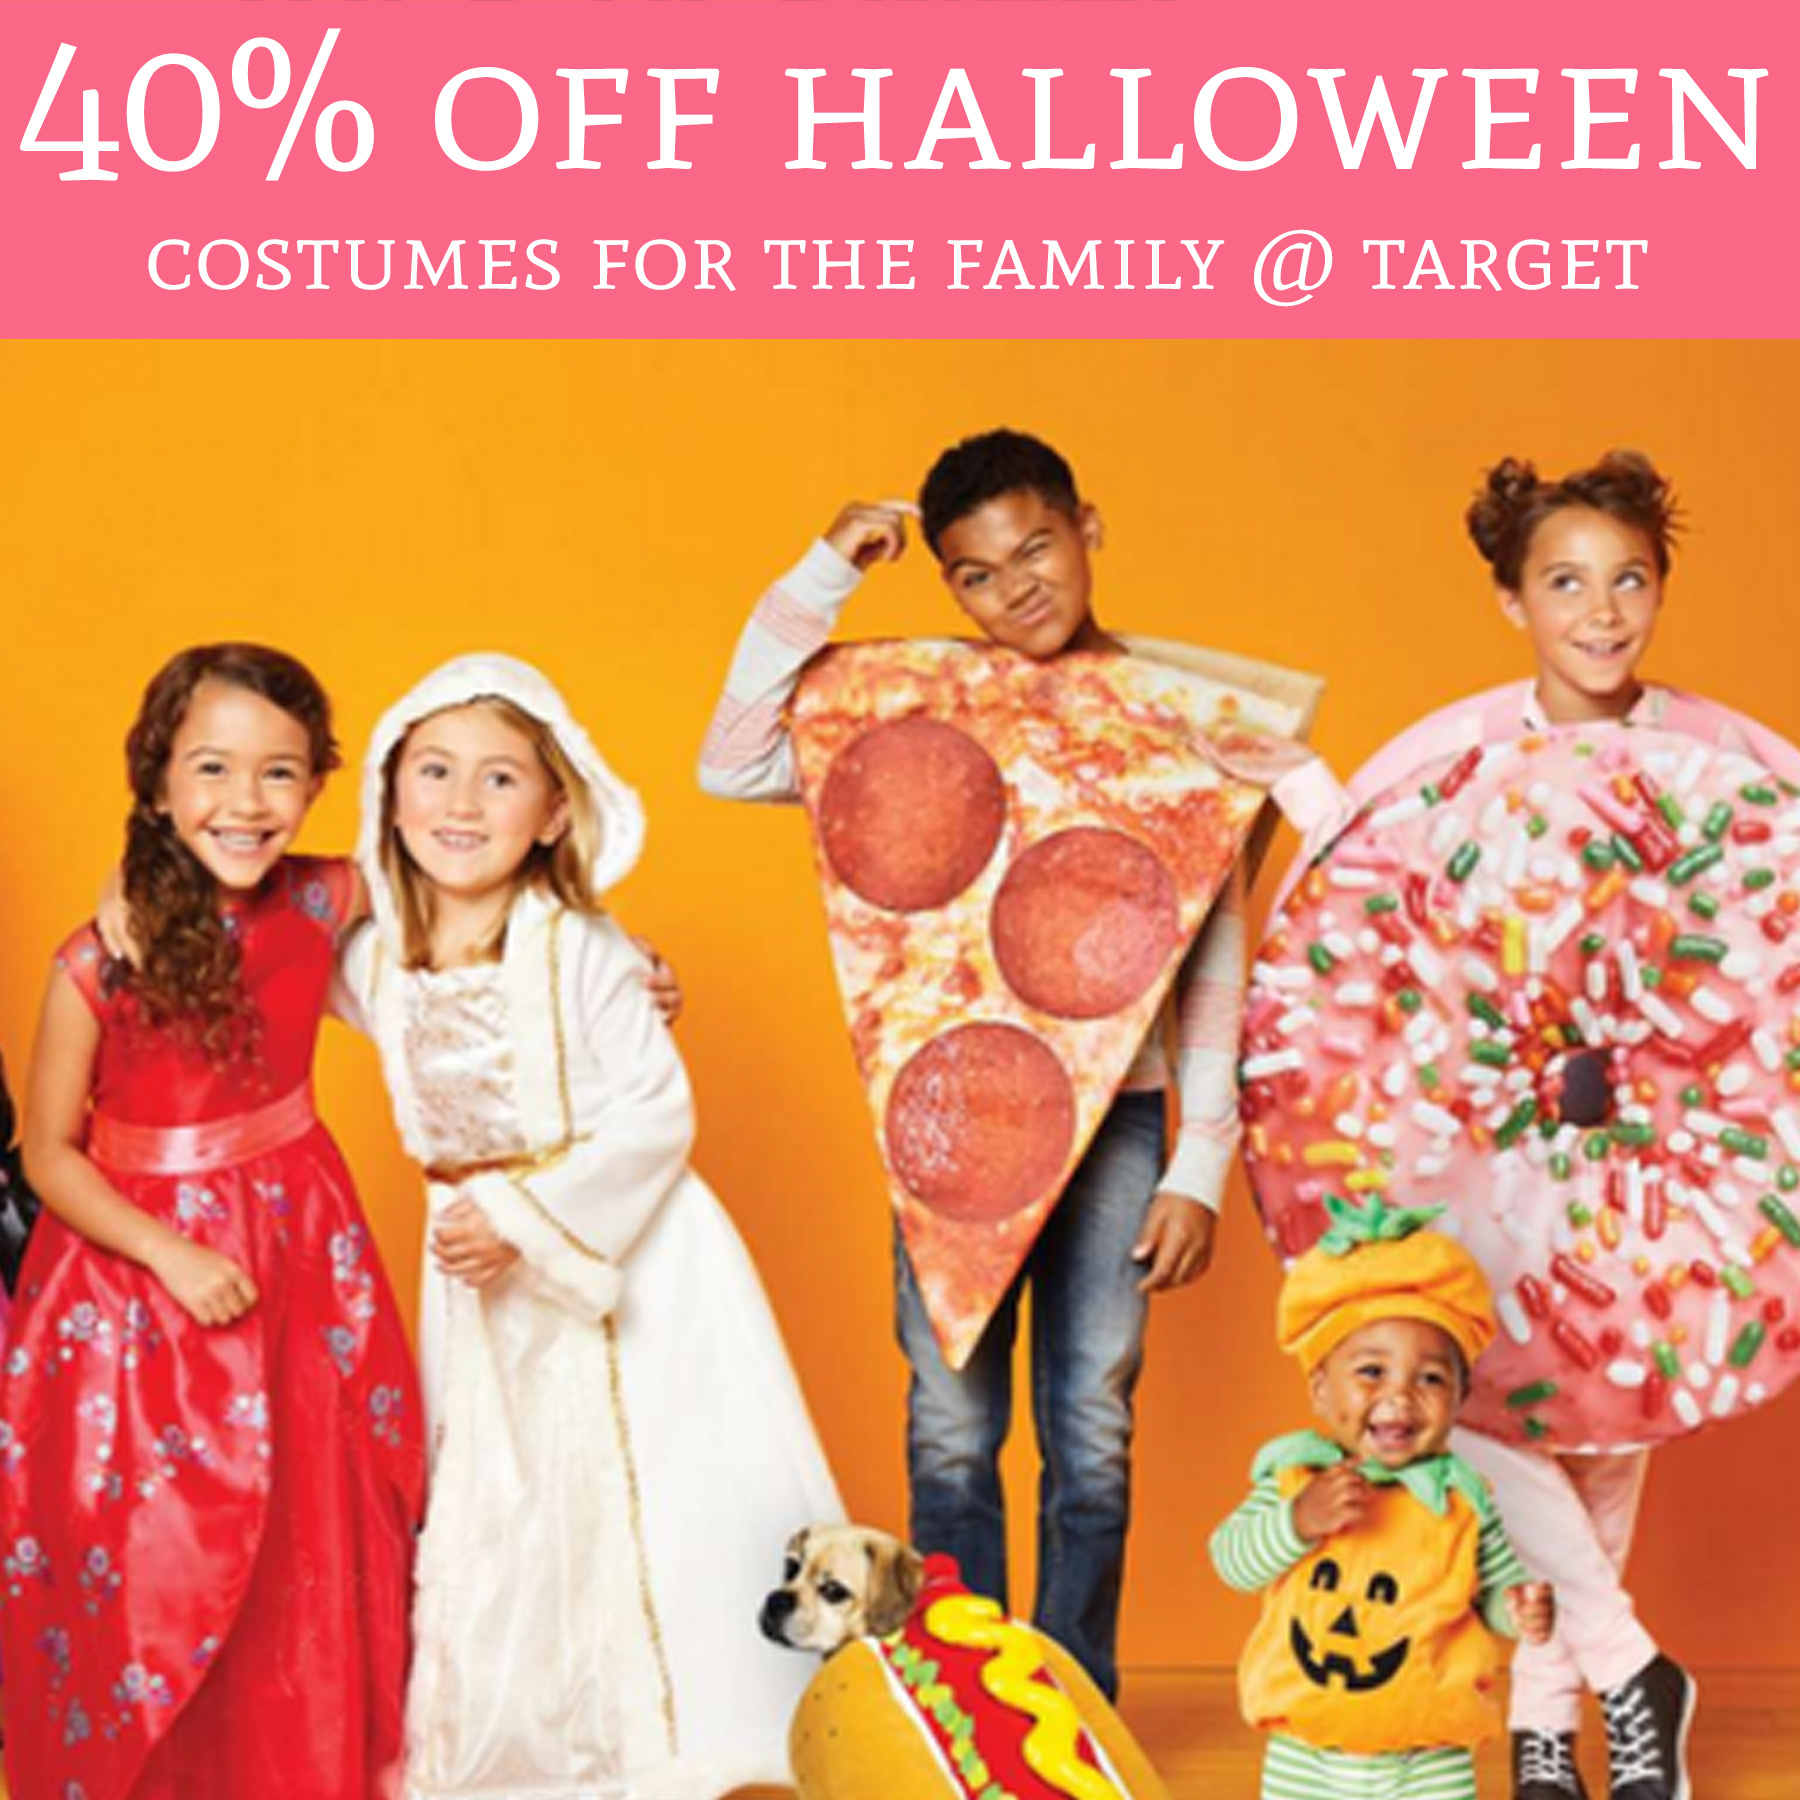 Perfect time to grab Halloween Costumes!  sc 1 st  Deal Hunting Babe & HOT! 40% Off Halloween Costumes For The Family @ Target - Deal ...